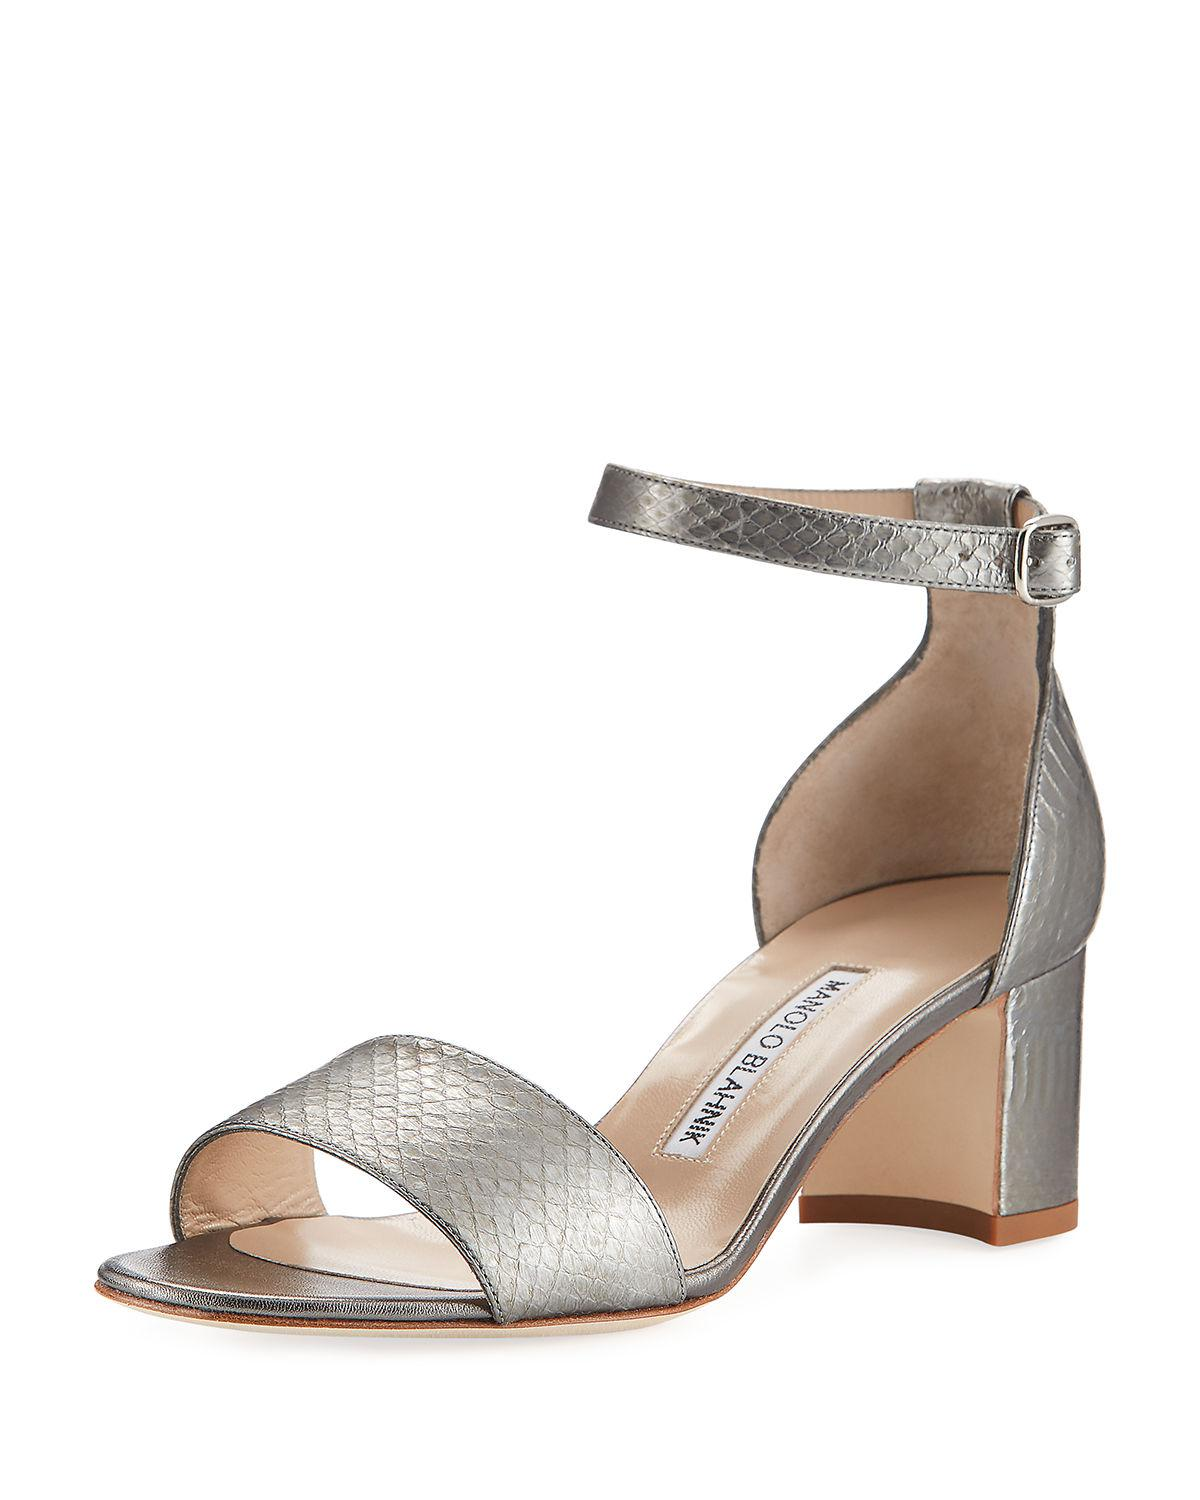 Manolo Blahnik Leather Embossed Sandals wholesale price for sale xSJneUUo